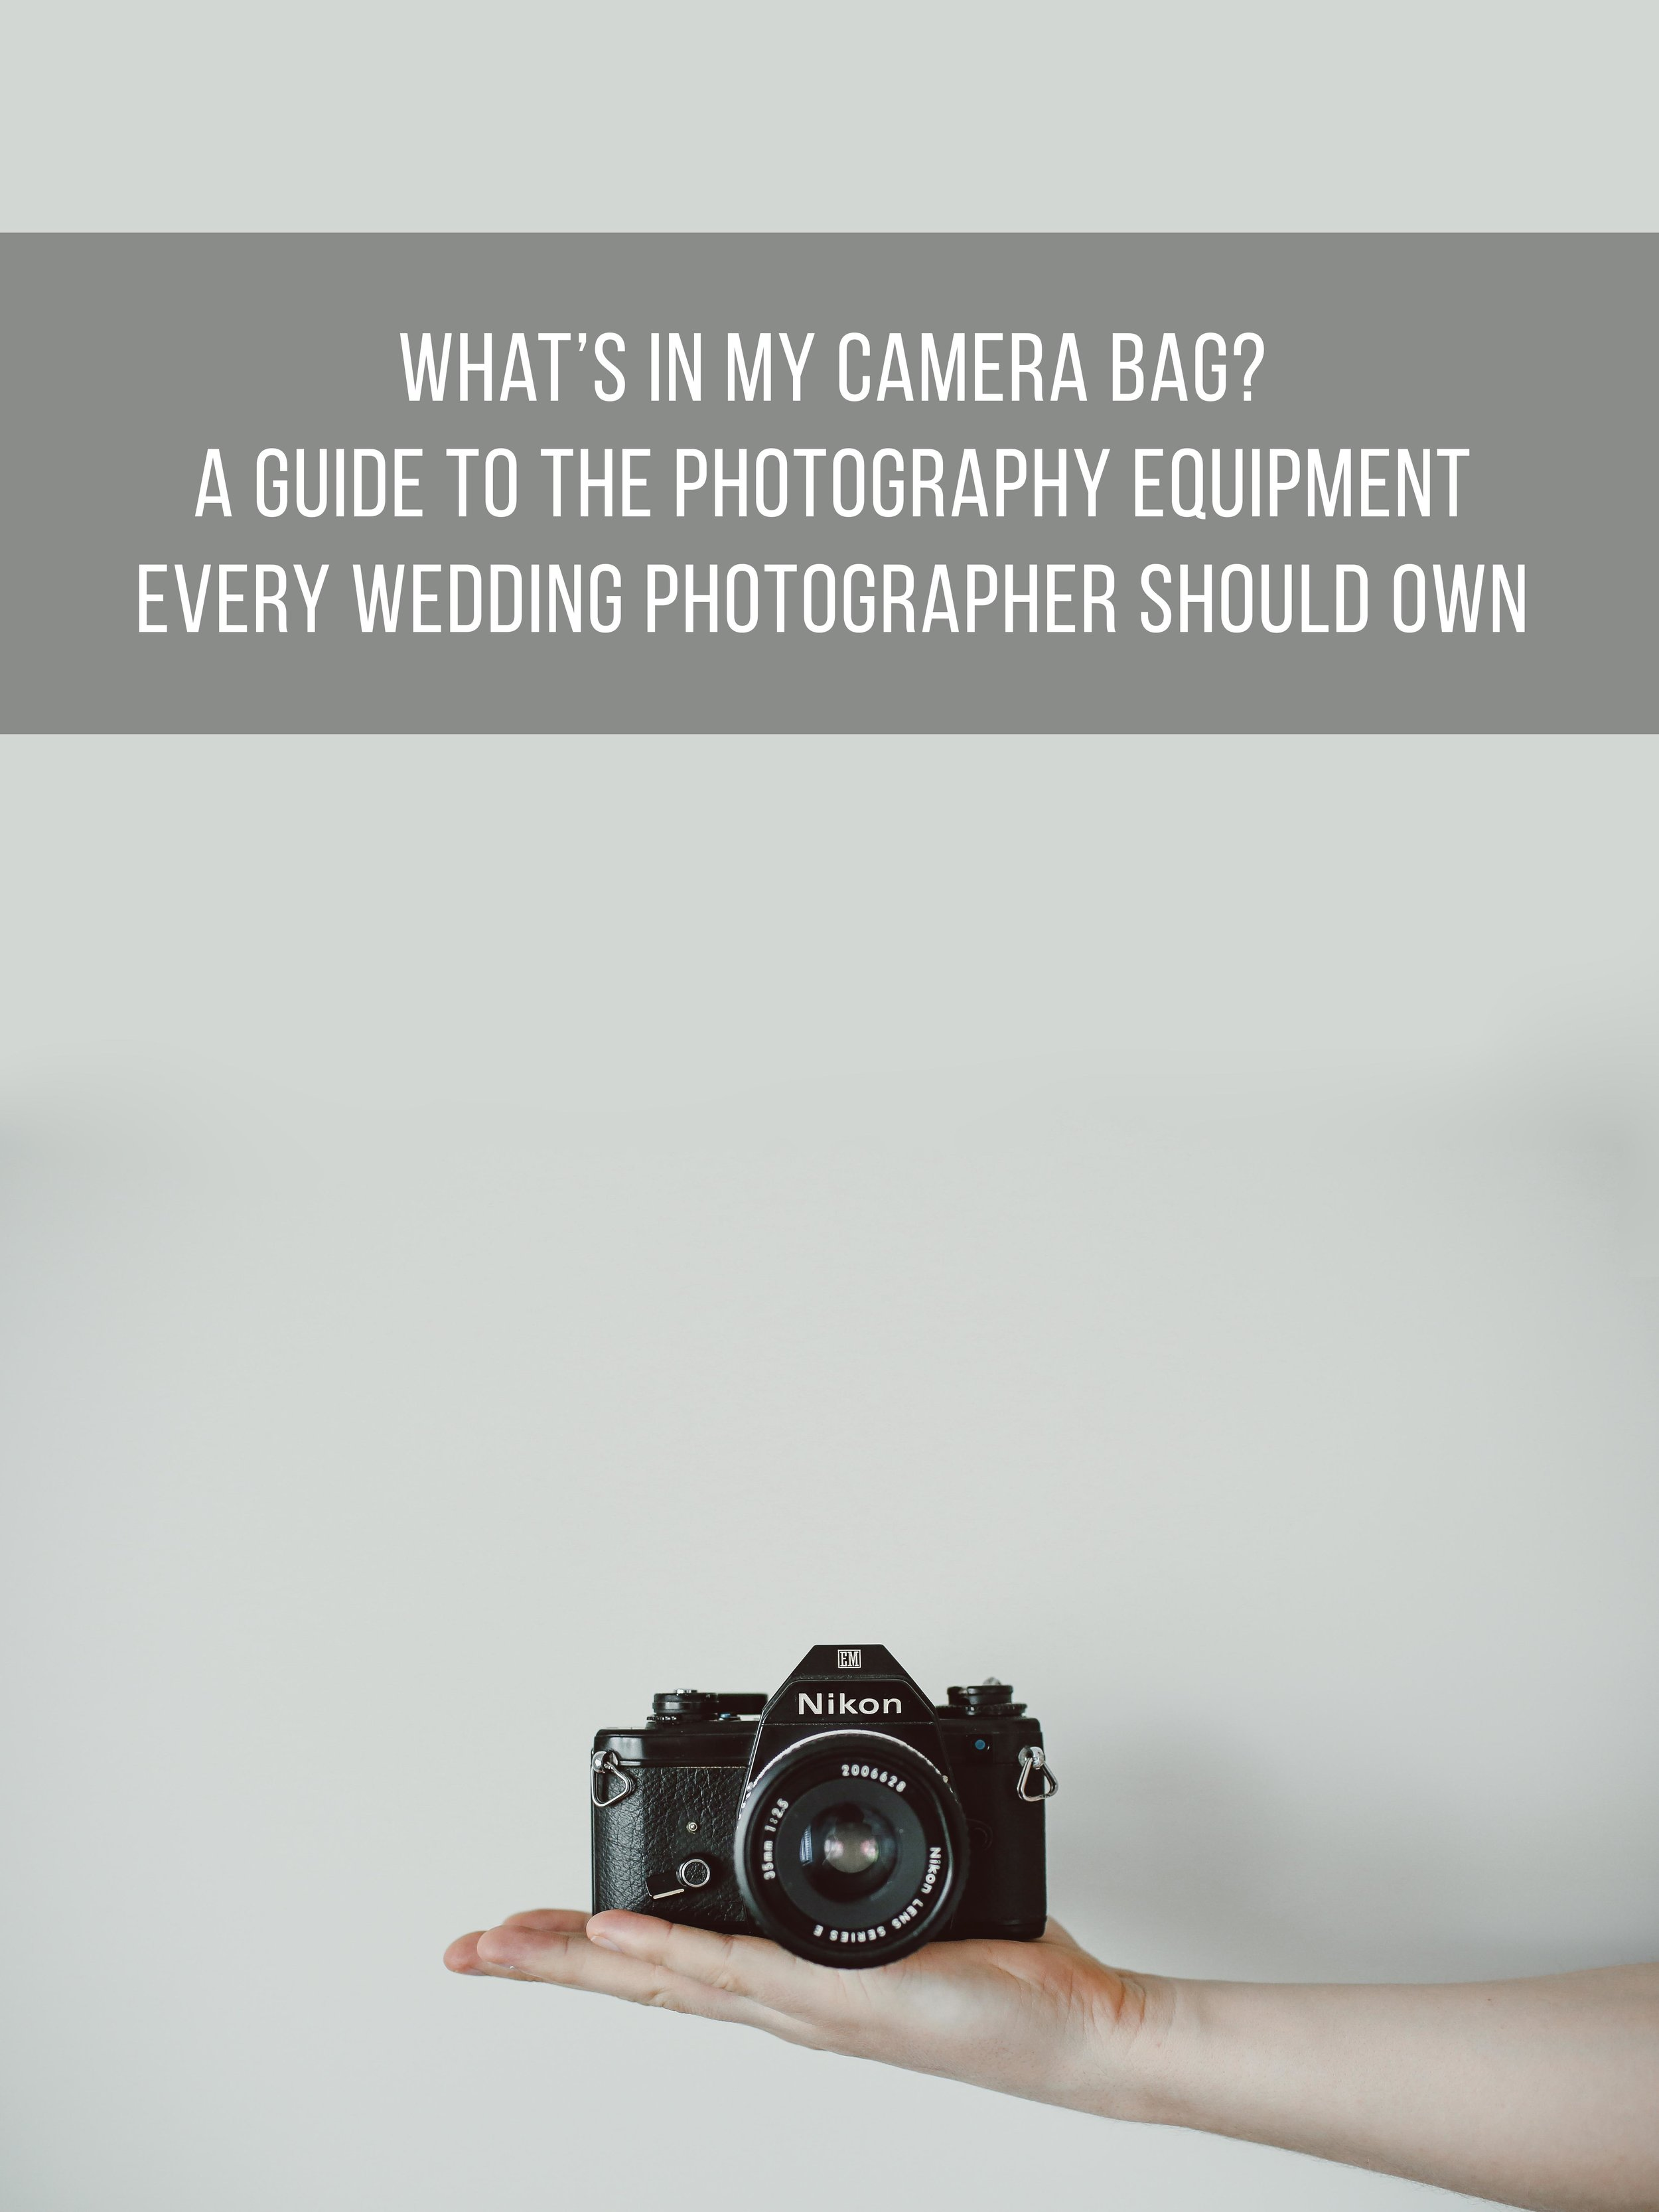 new photographer advice, how to be a photographer, ocf training, best photo equipment, how to be a wedding photographer, what to buy new photographer, best nikon equipment, best nikon camera, easy flash set up, easy camera set up, how to become wedding photographer, how to take better photos, colorado wedding photographer, denver photographer, photography classes, photography education, new photographer, how to photography